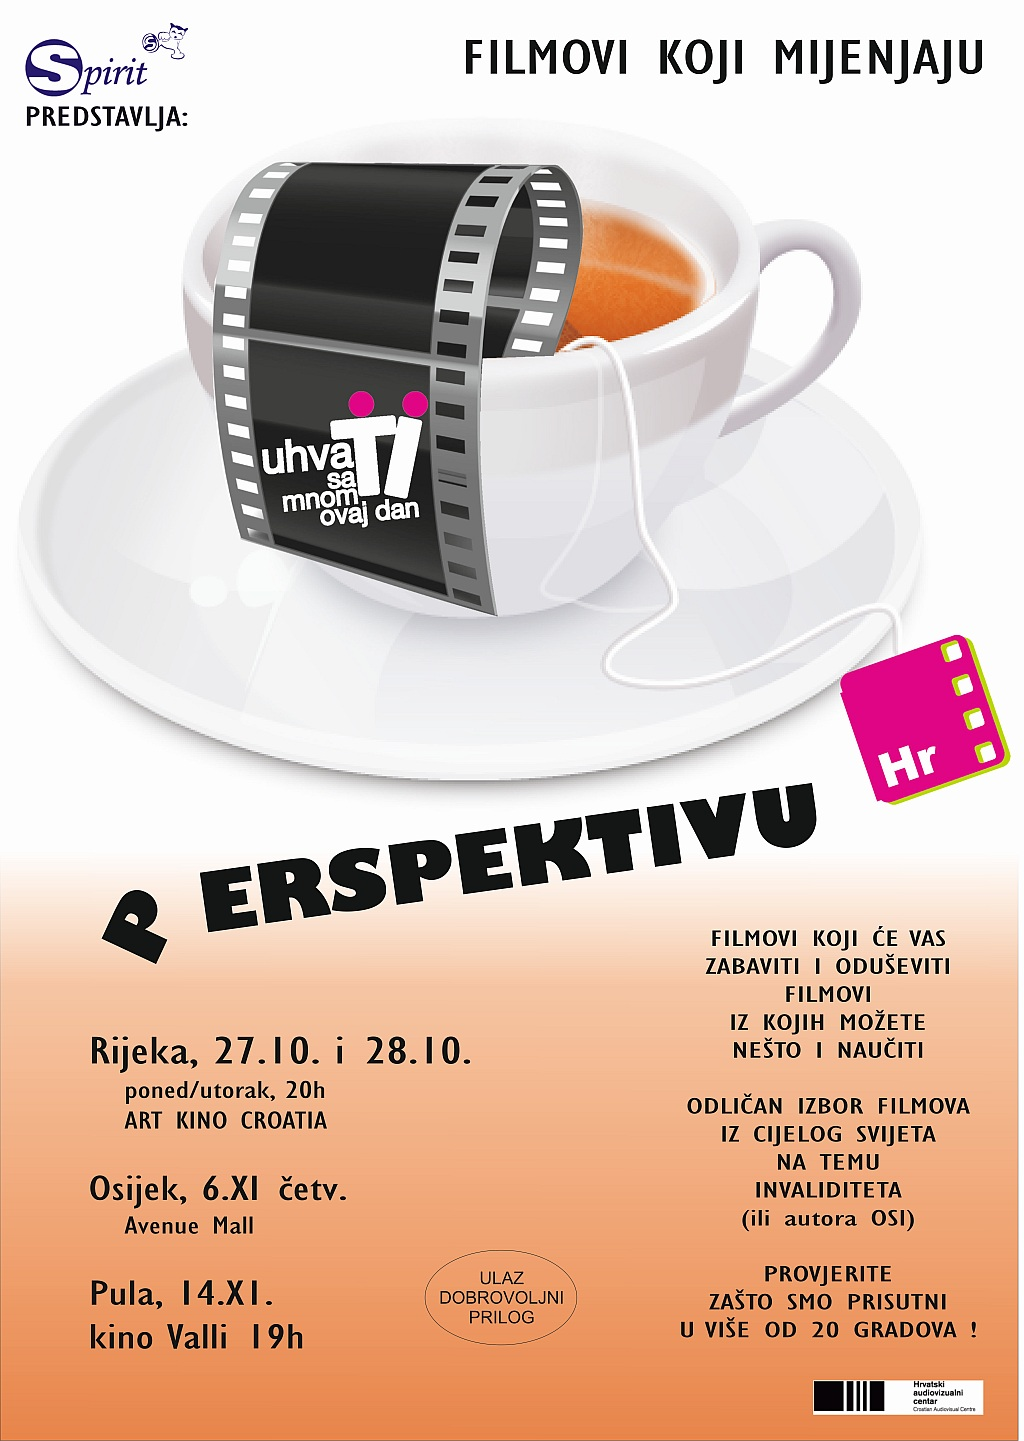 UHVATIplakat2014._1